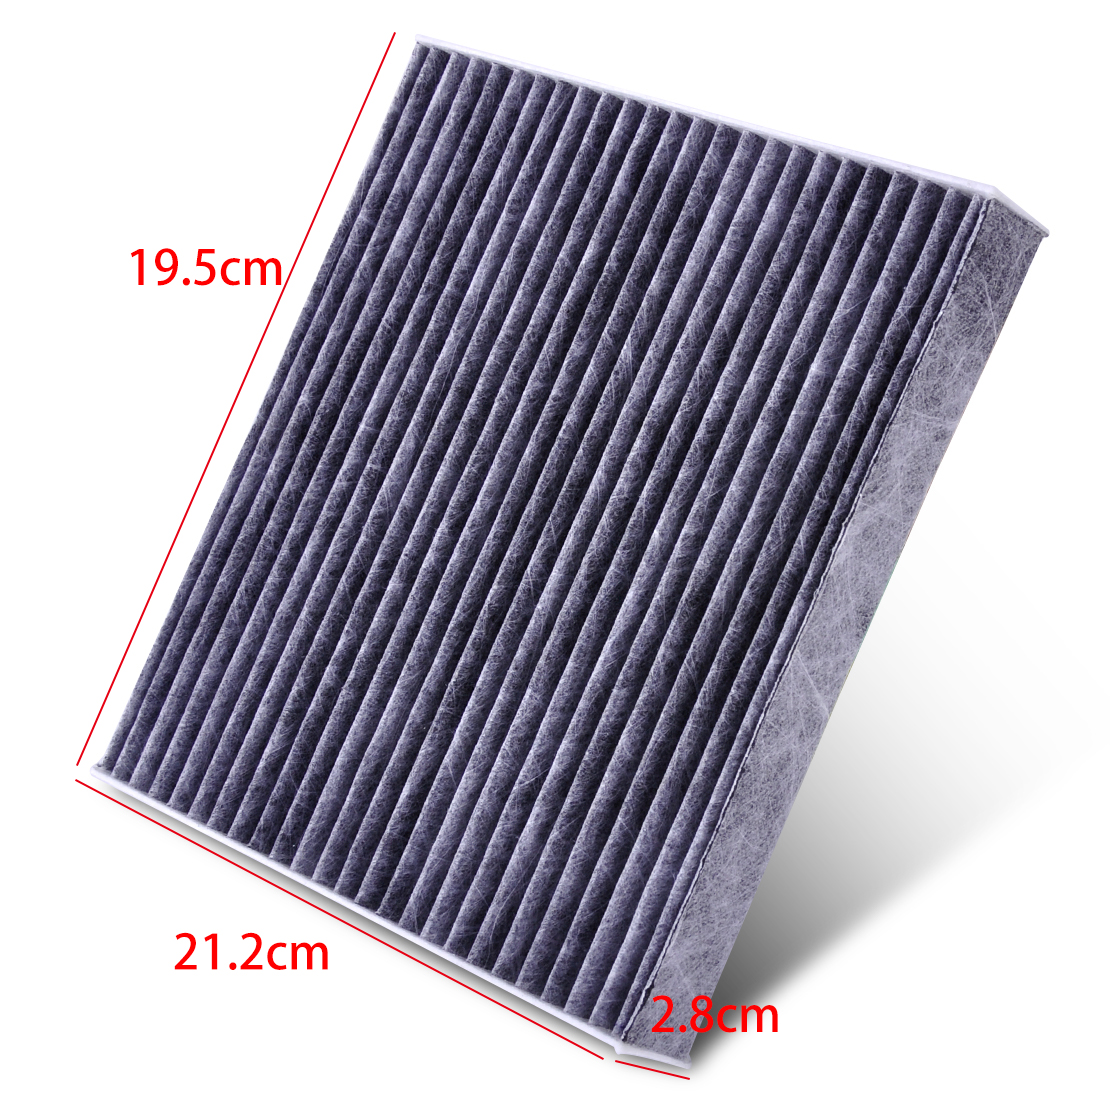 carbon fiber cabin air filter fits toyota camry corolla highlander 87139 50100. Black Bedroom Furniture Sets. Home Design Ideas